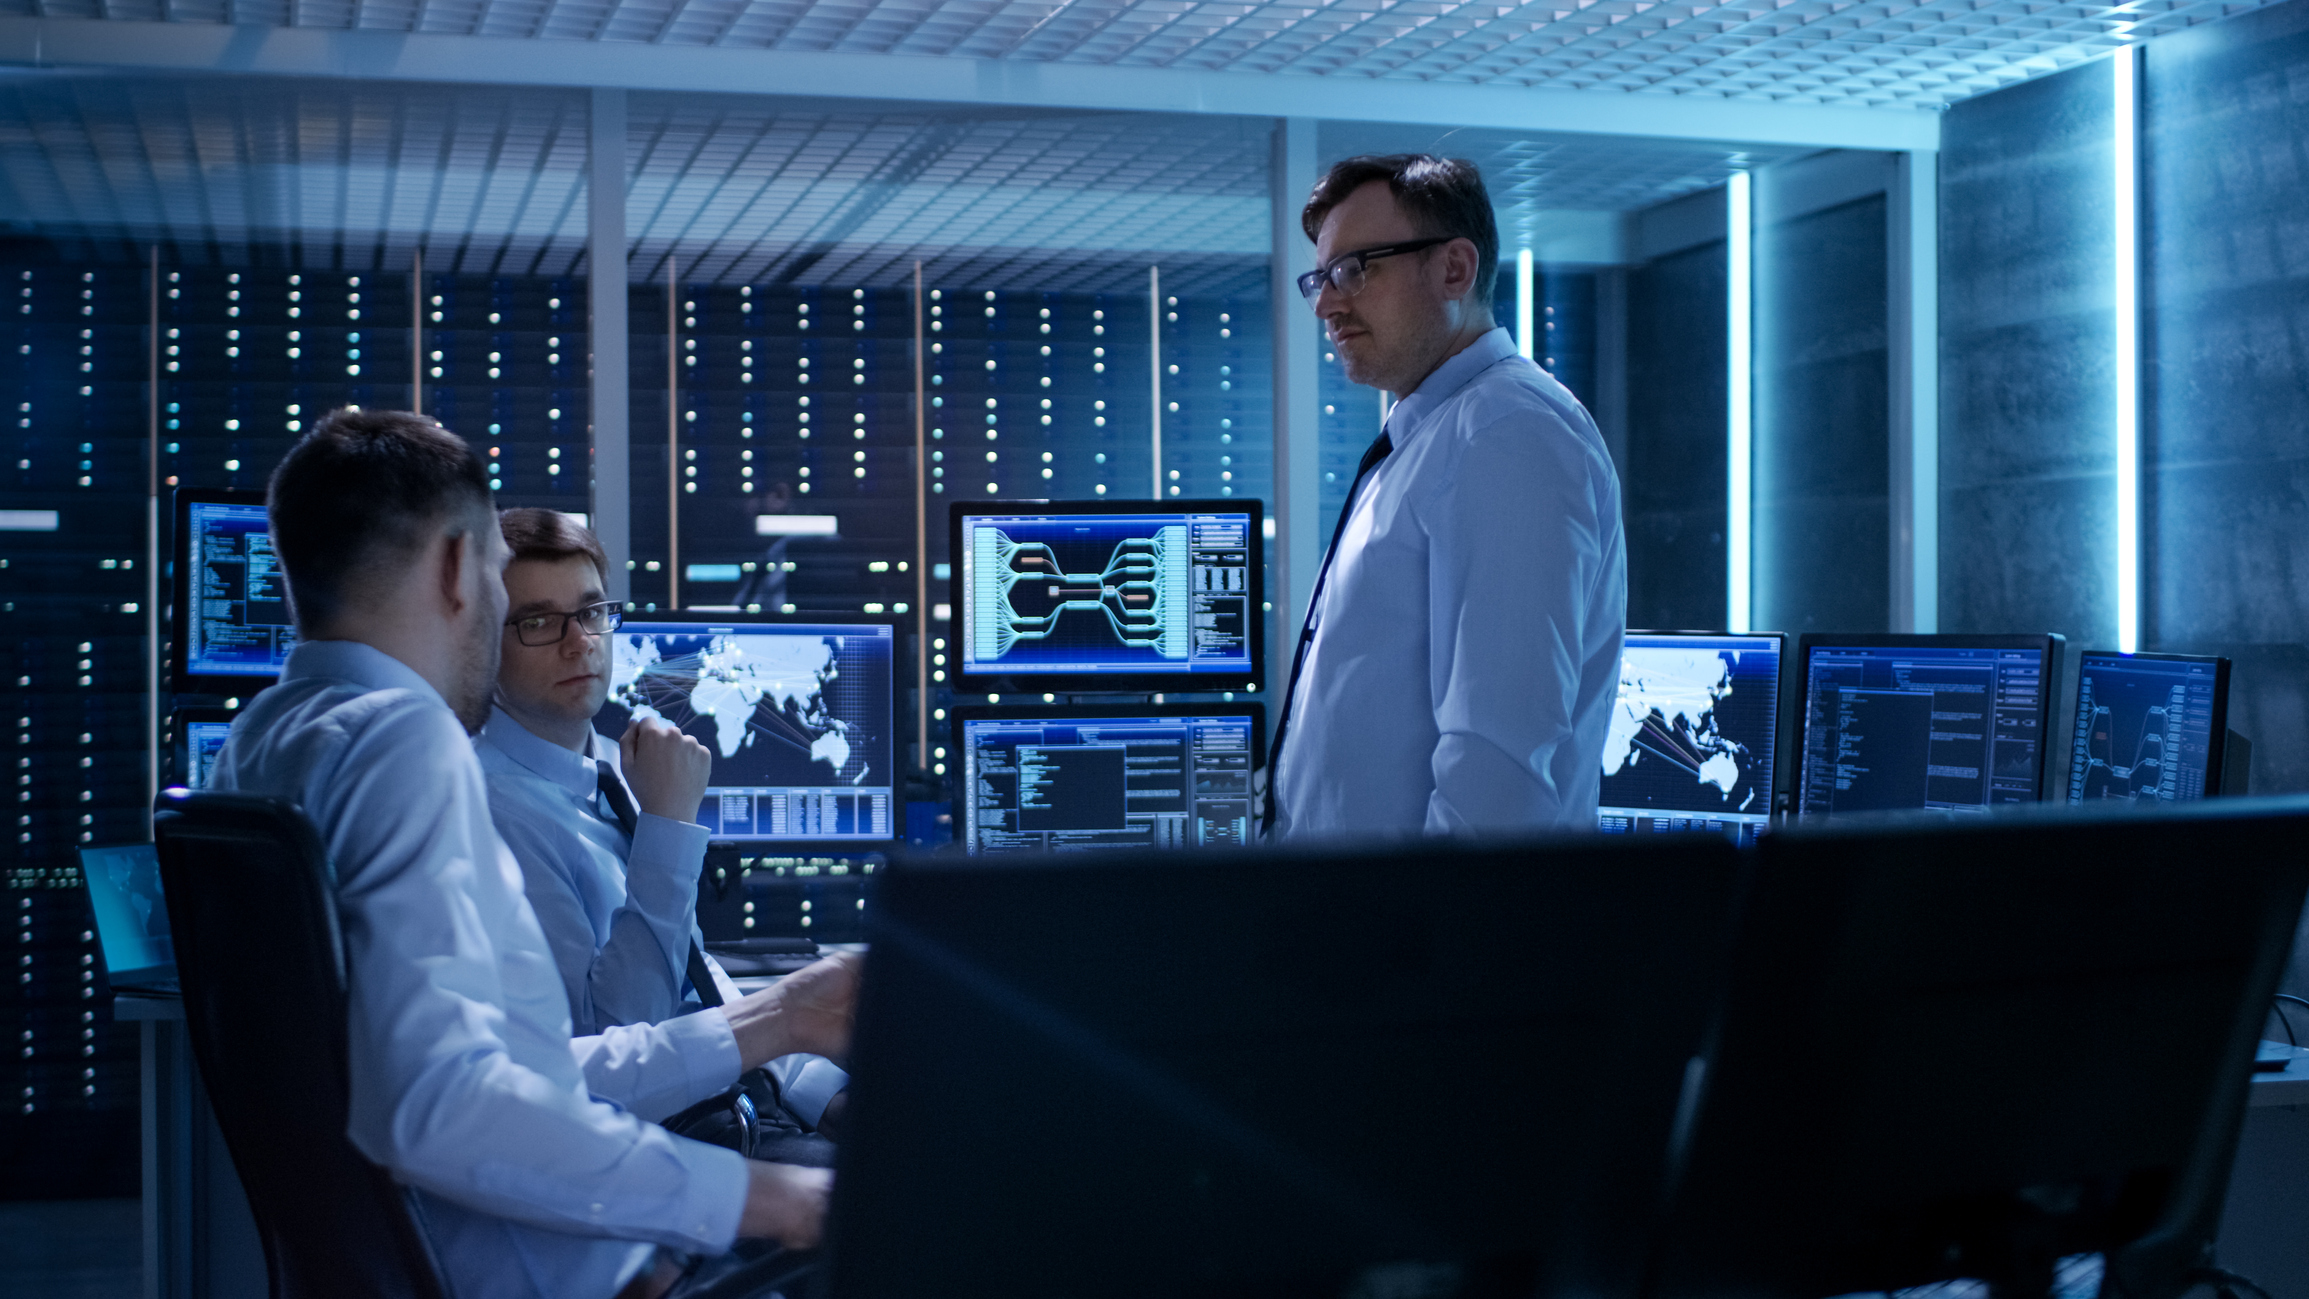 Best Cybersecurity Certifications for a Job